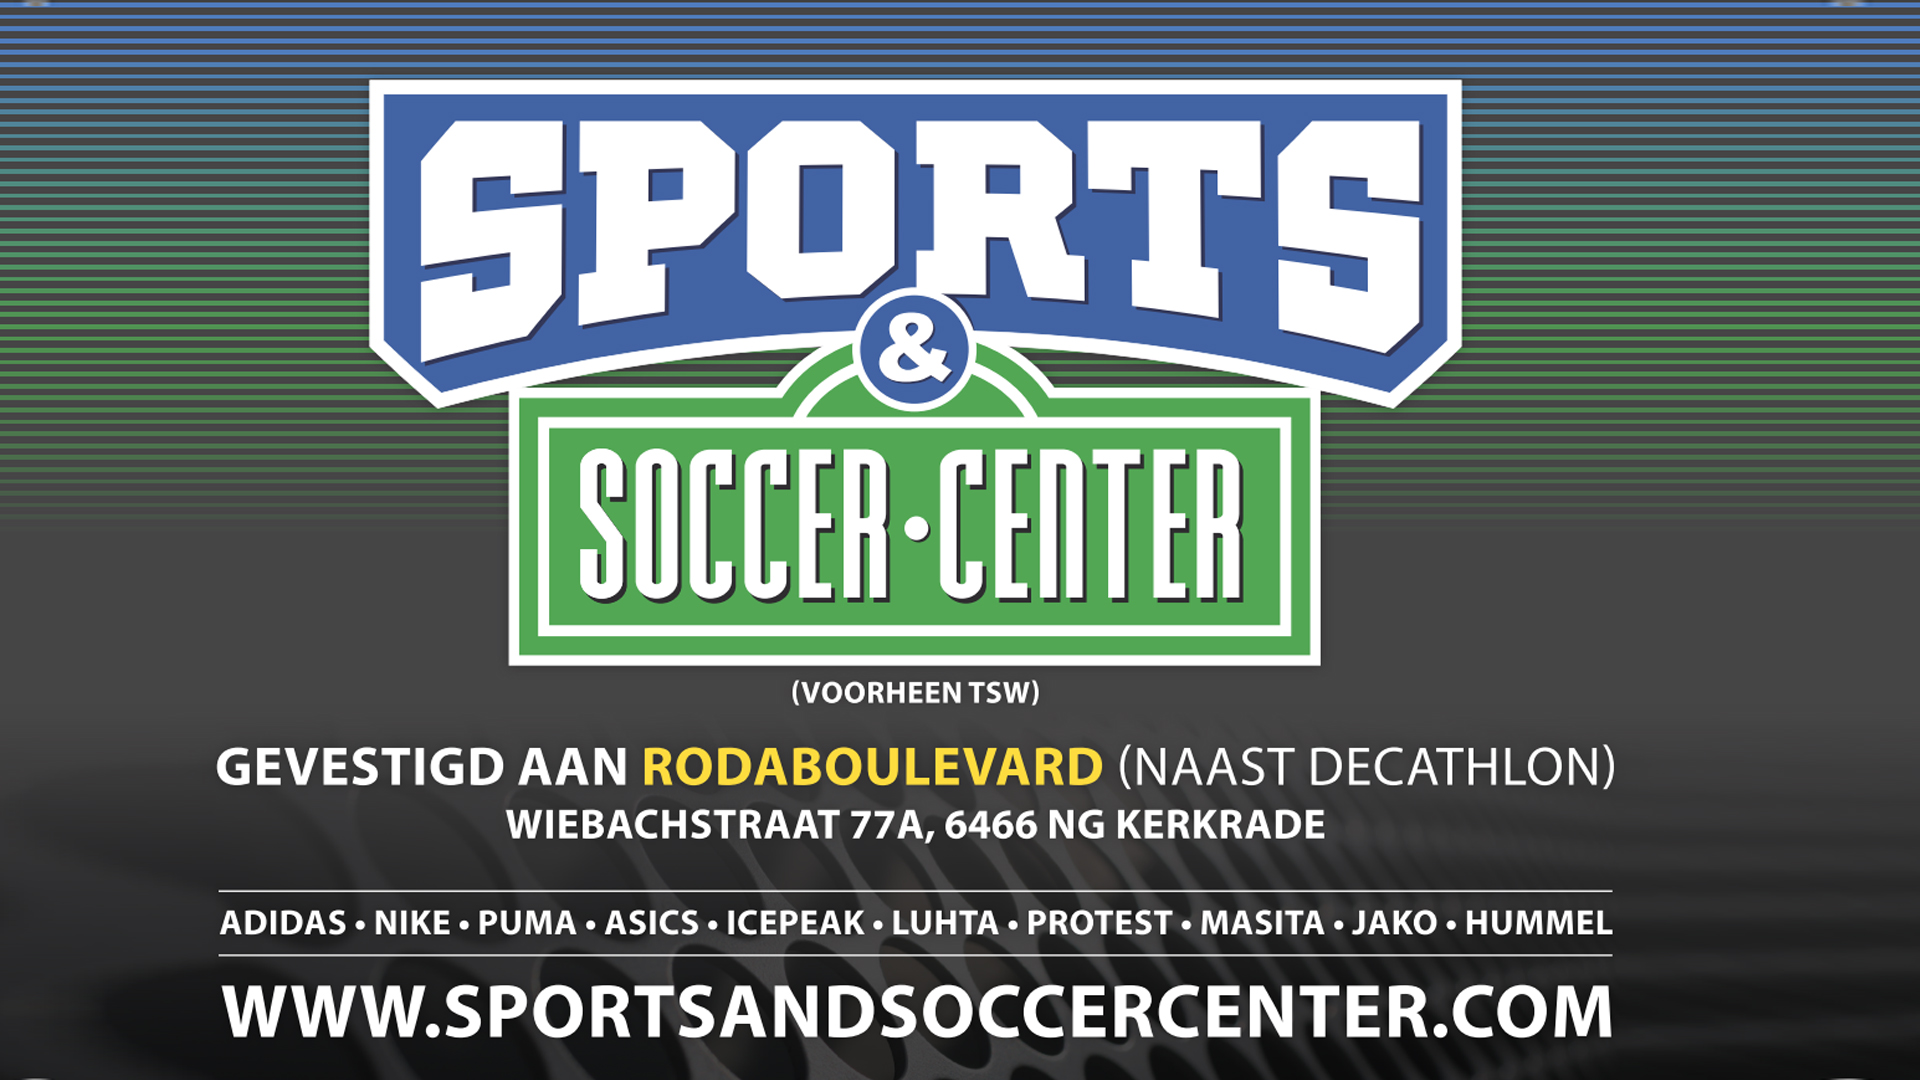 Sports soccer center